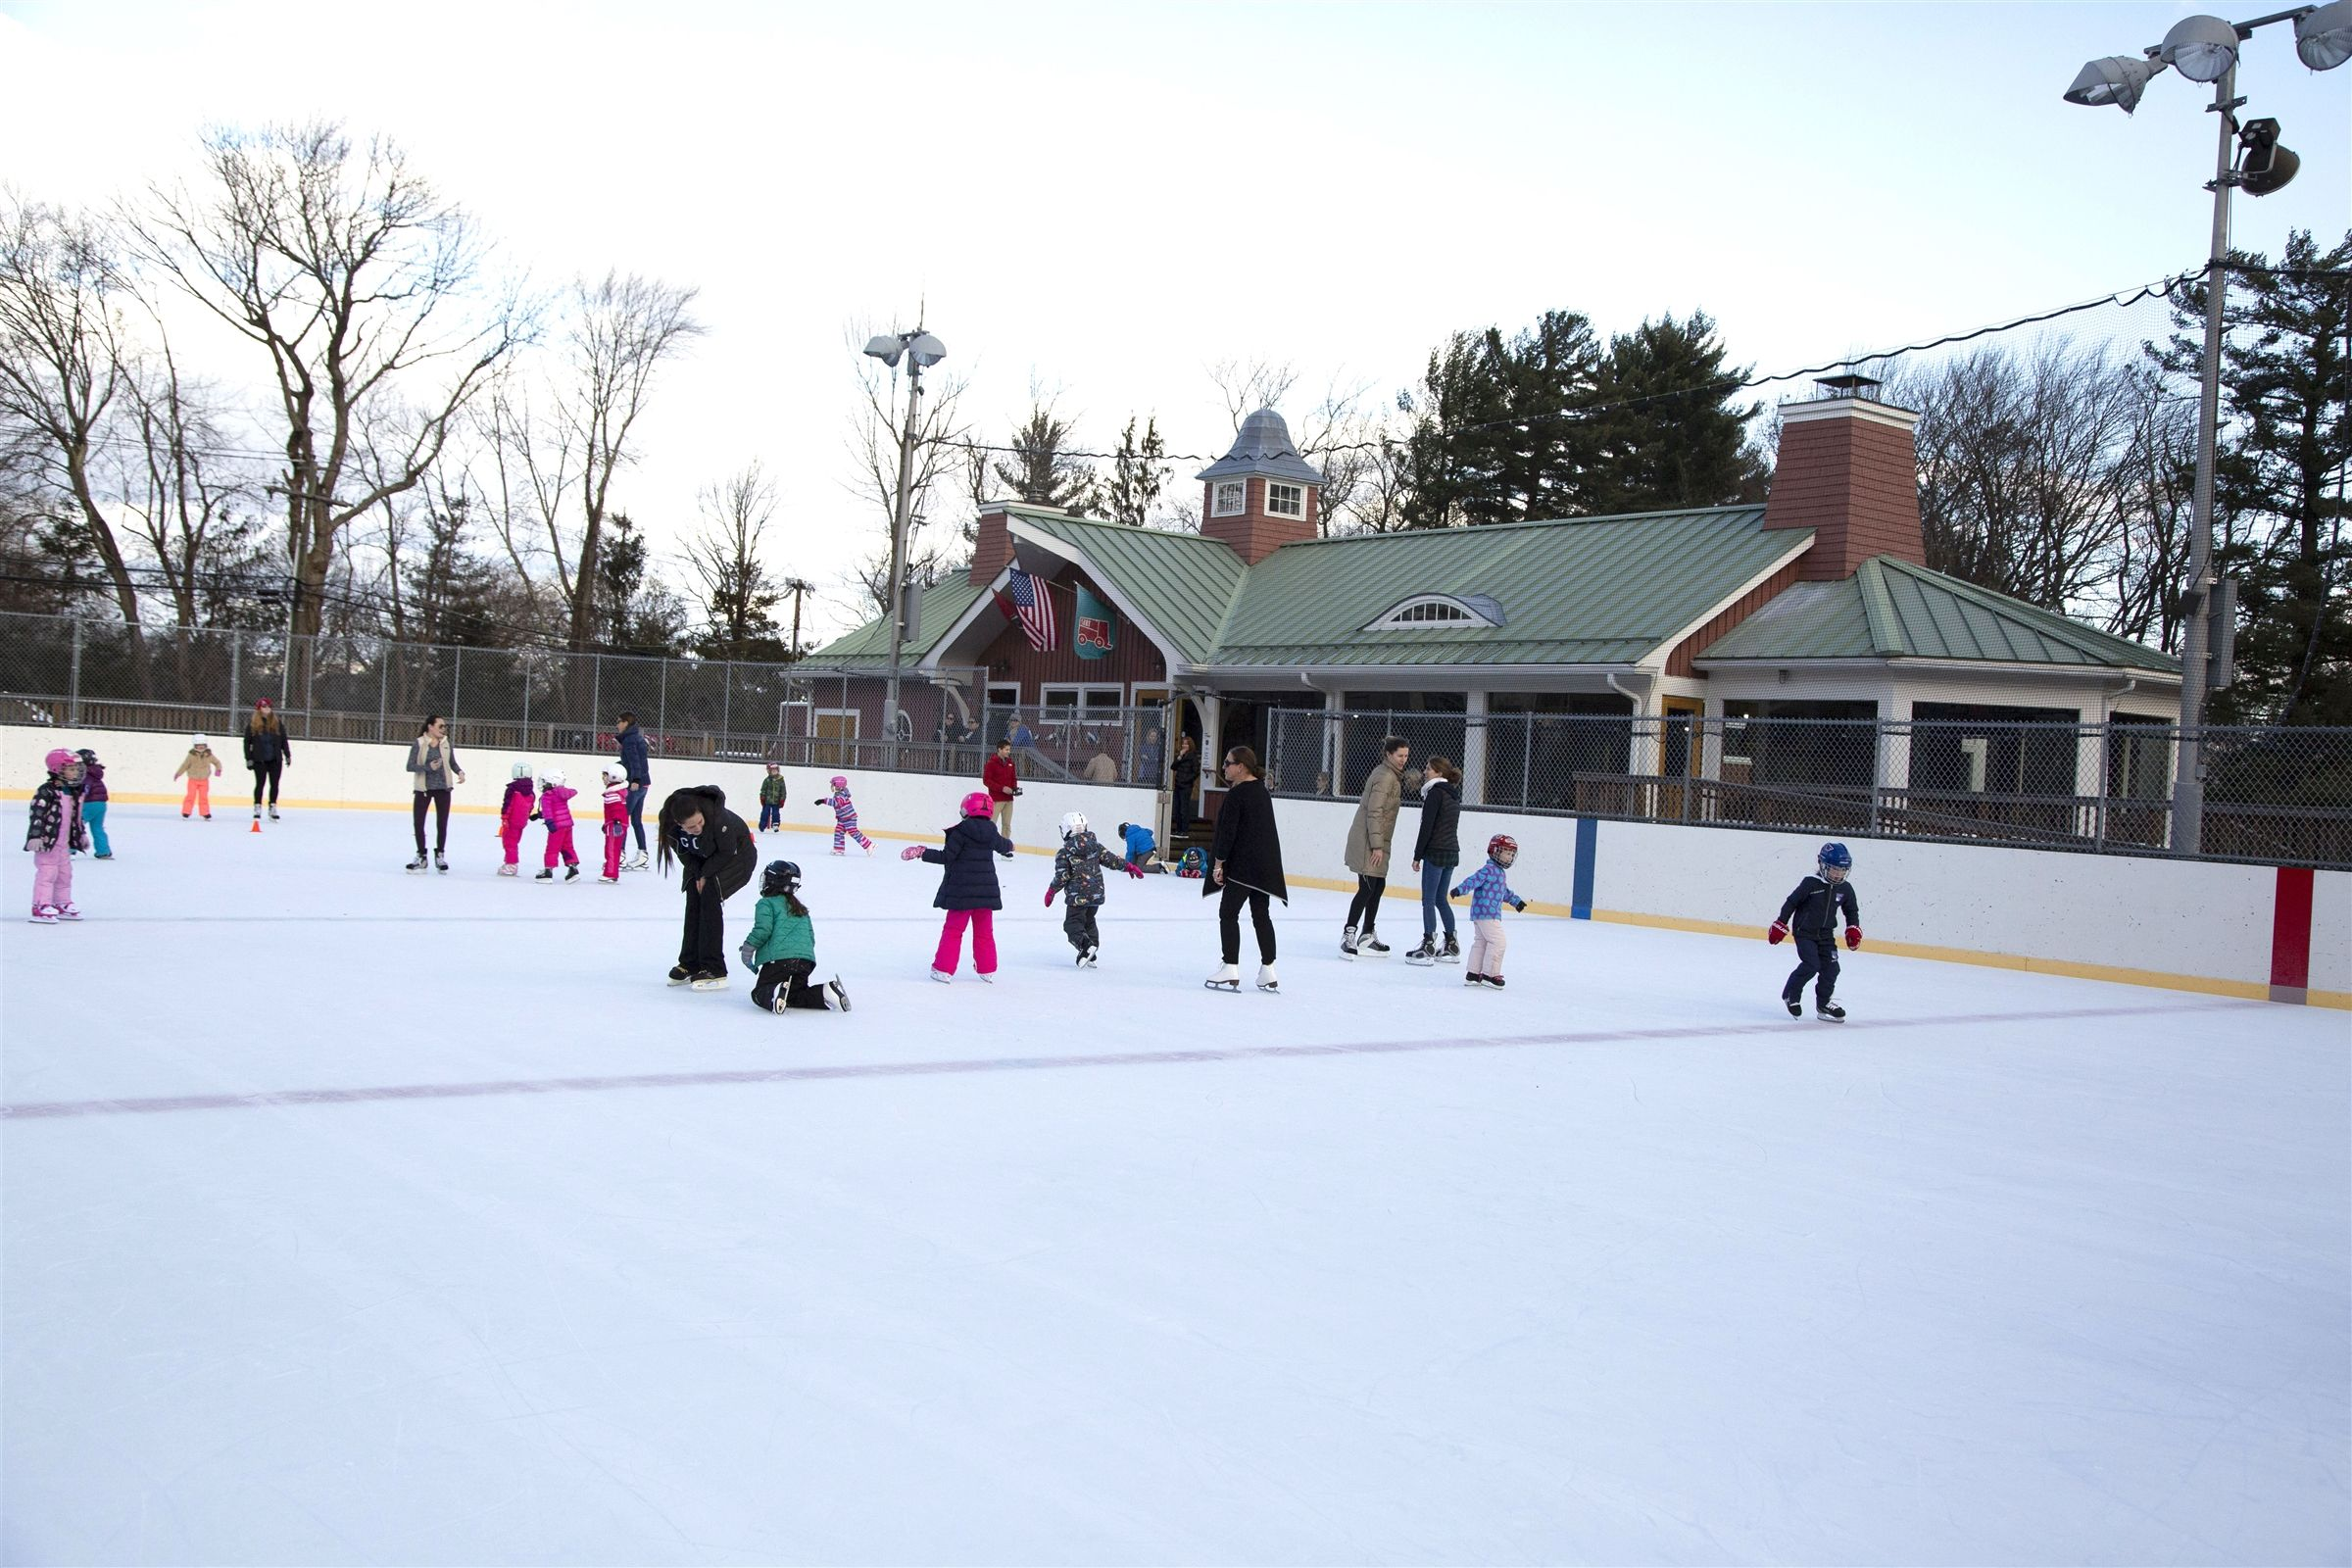 The New Canaan Winter Club, privately owned but affiliated with Country School, is the site of weekly skating lessons for Kindergarten through Grade 4, daily hockey practices and games for Grades 5 through 9.